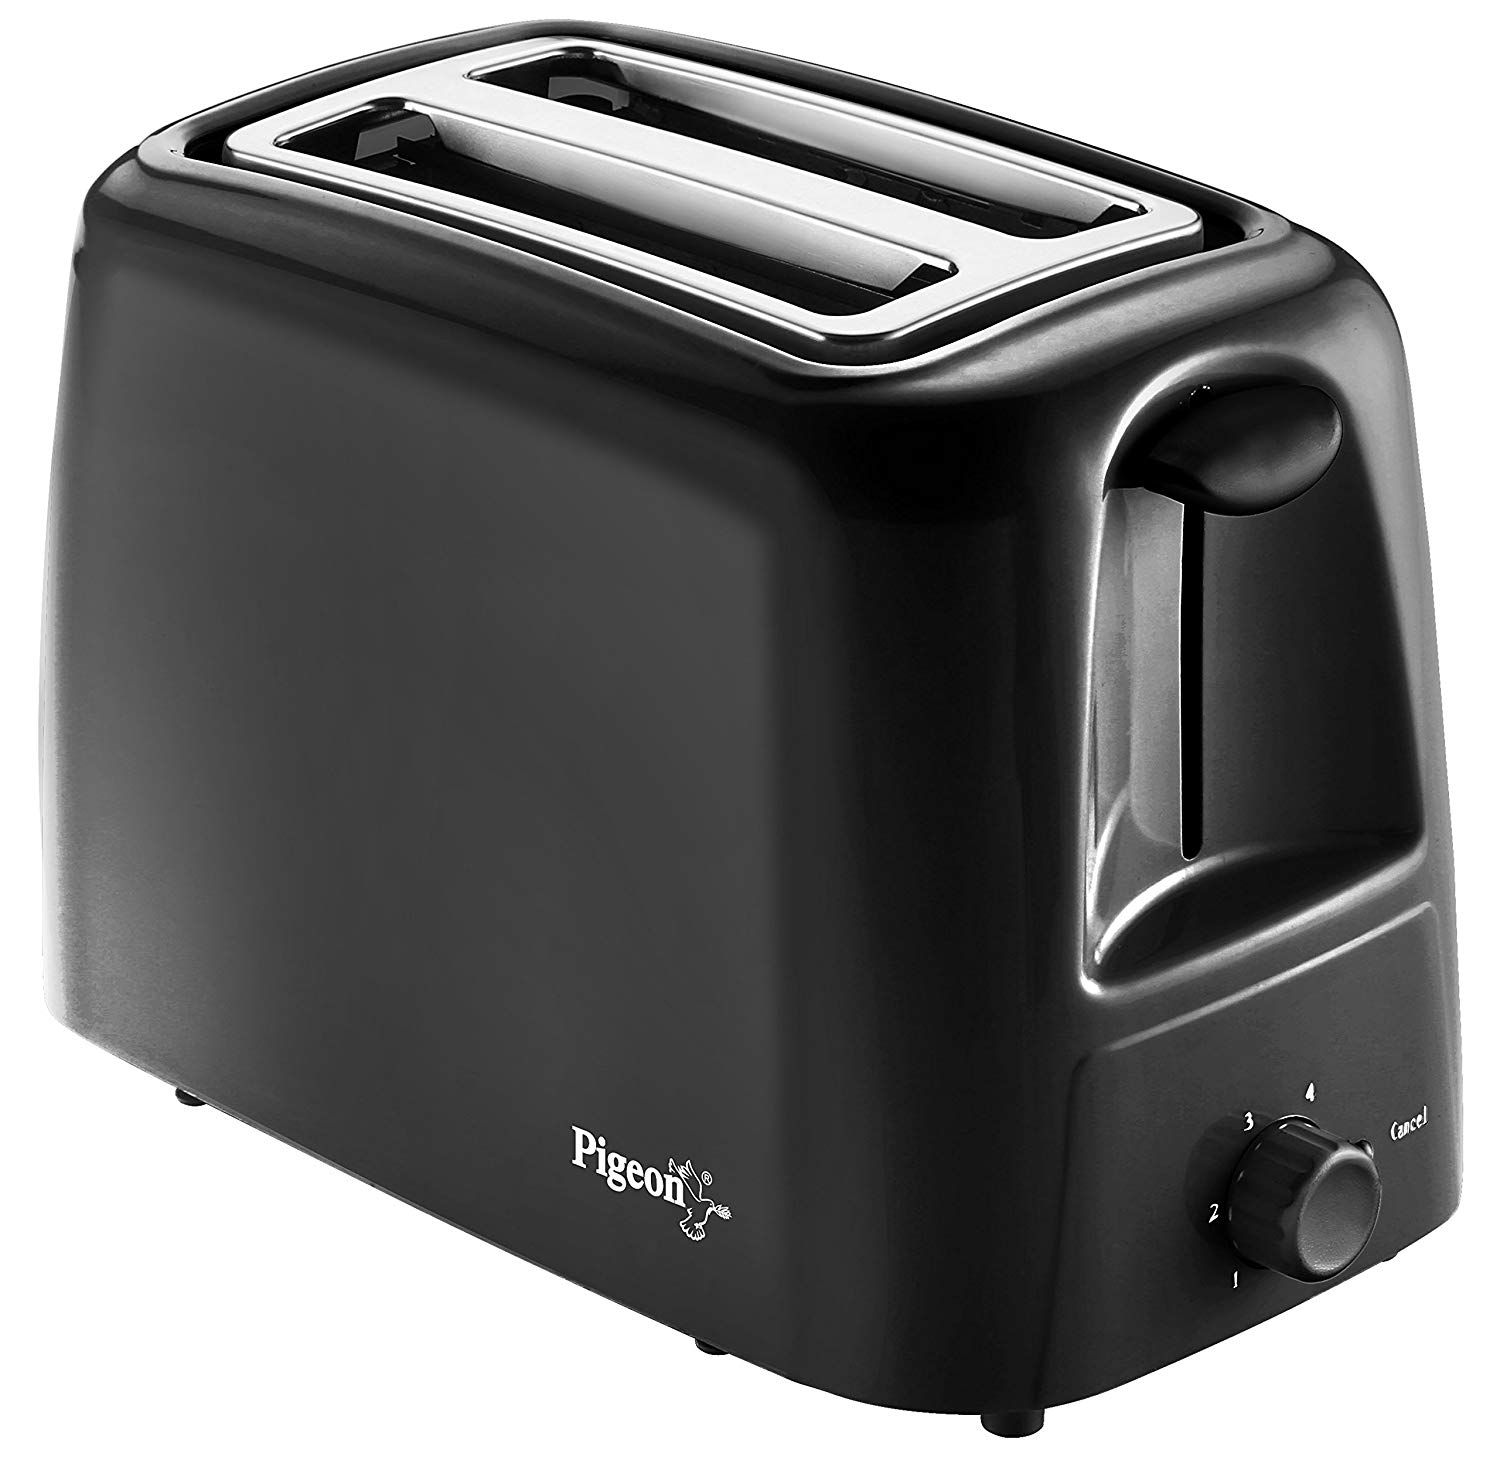 Pigeon Two Slice Auto Pop-up Toaster